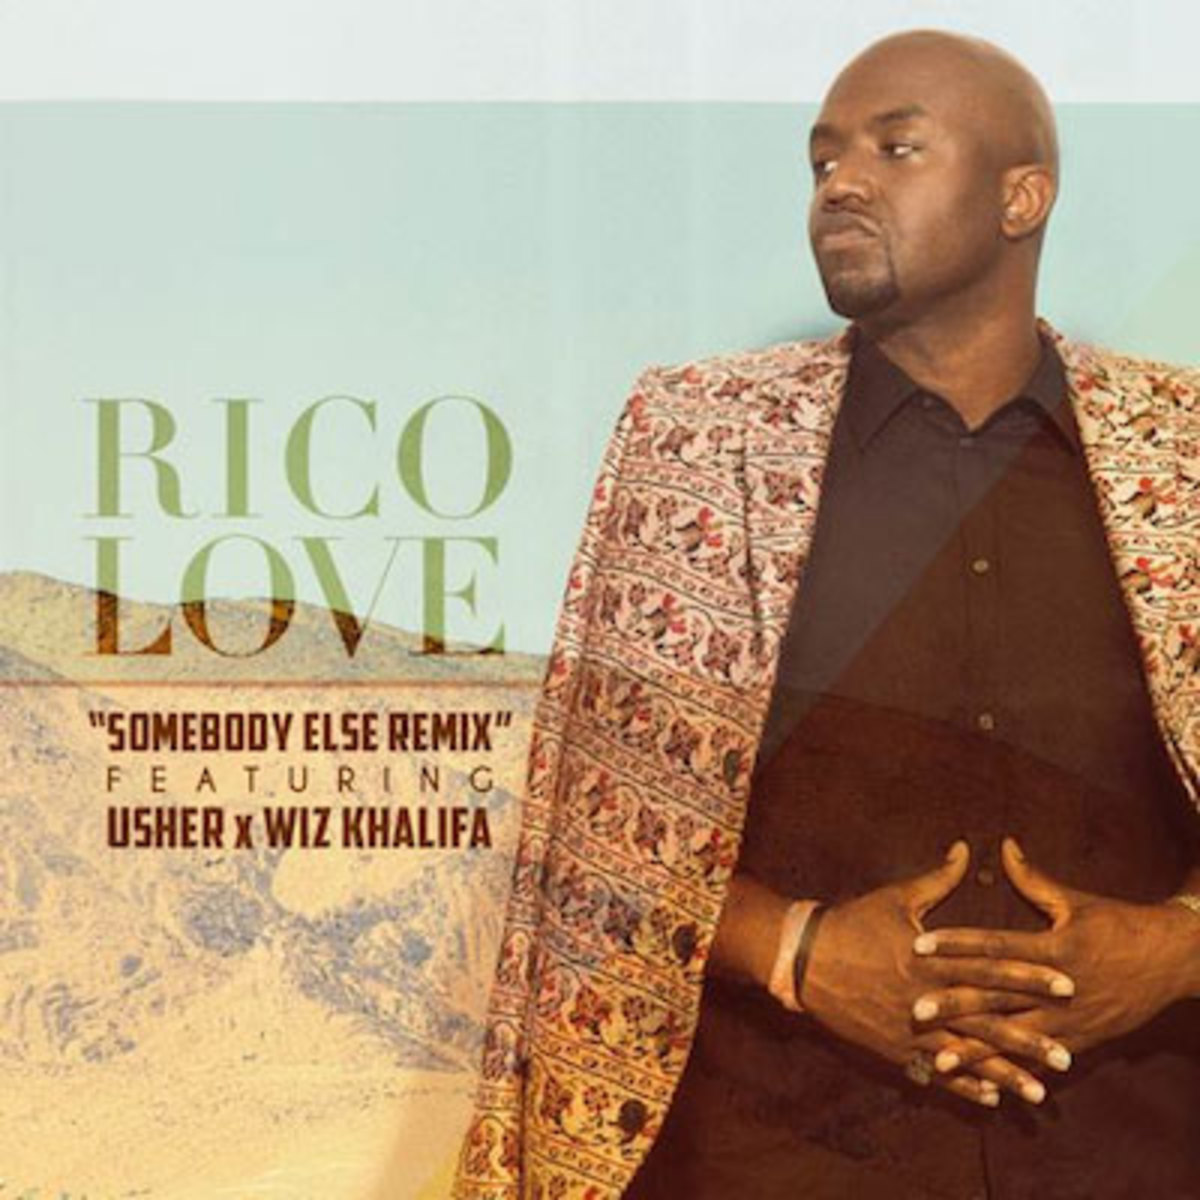 rico-love-somebody-else-remix.jpg